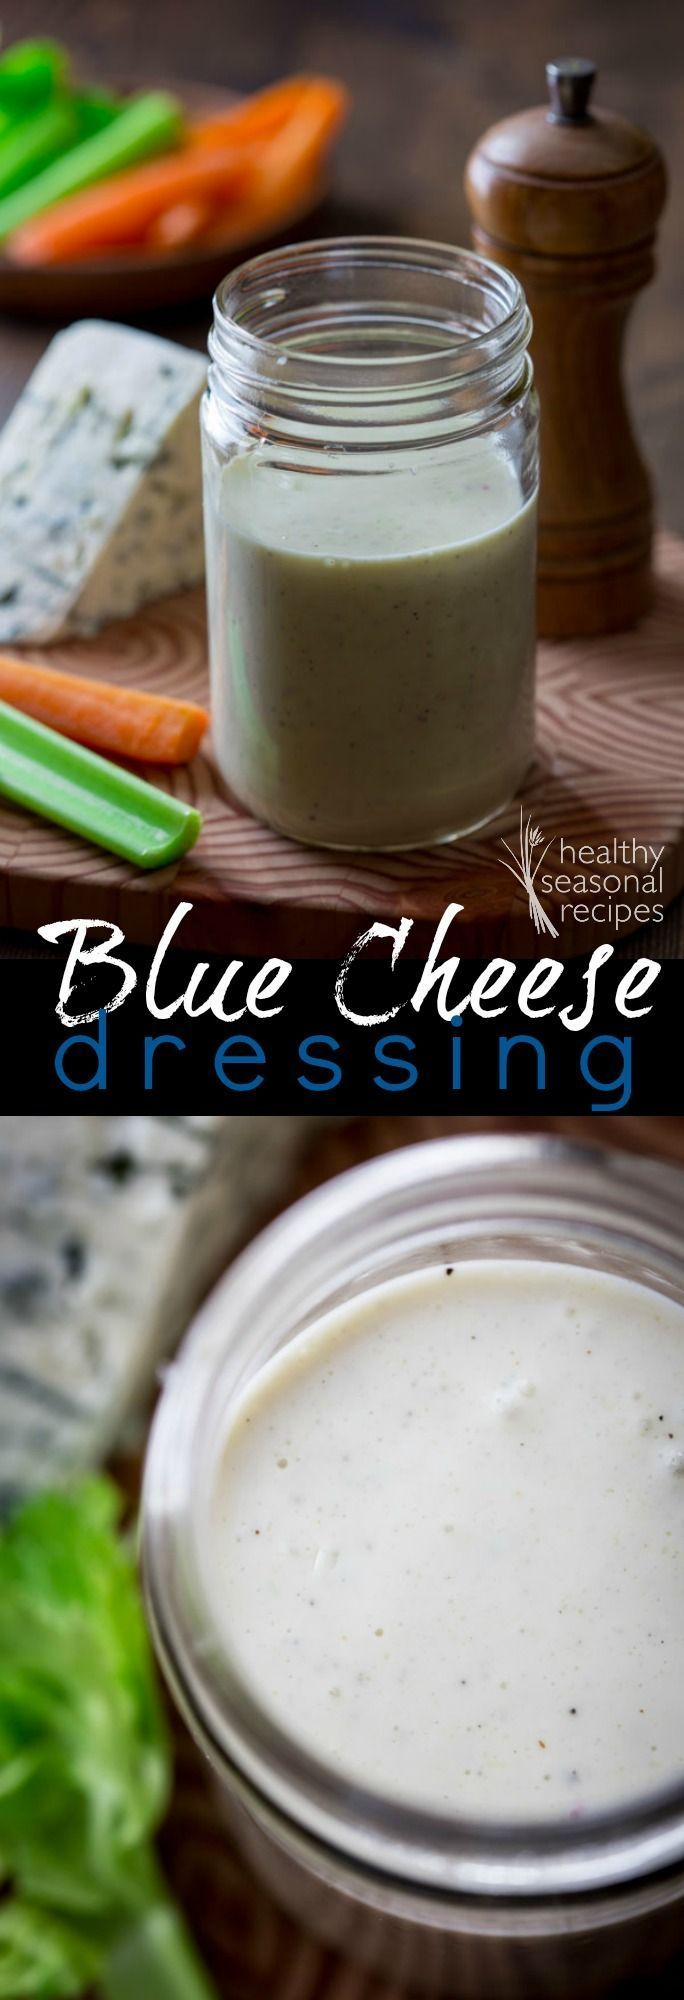 Lower calorie blue cheese dressing recipe   85 calories per serving on Healthy Seasonal Recipes